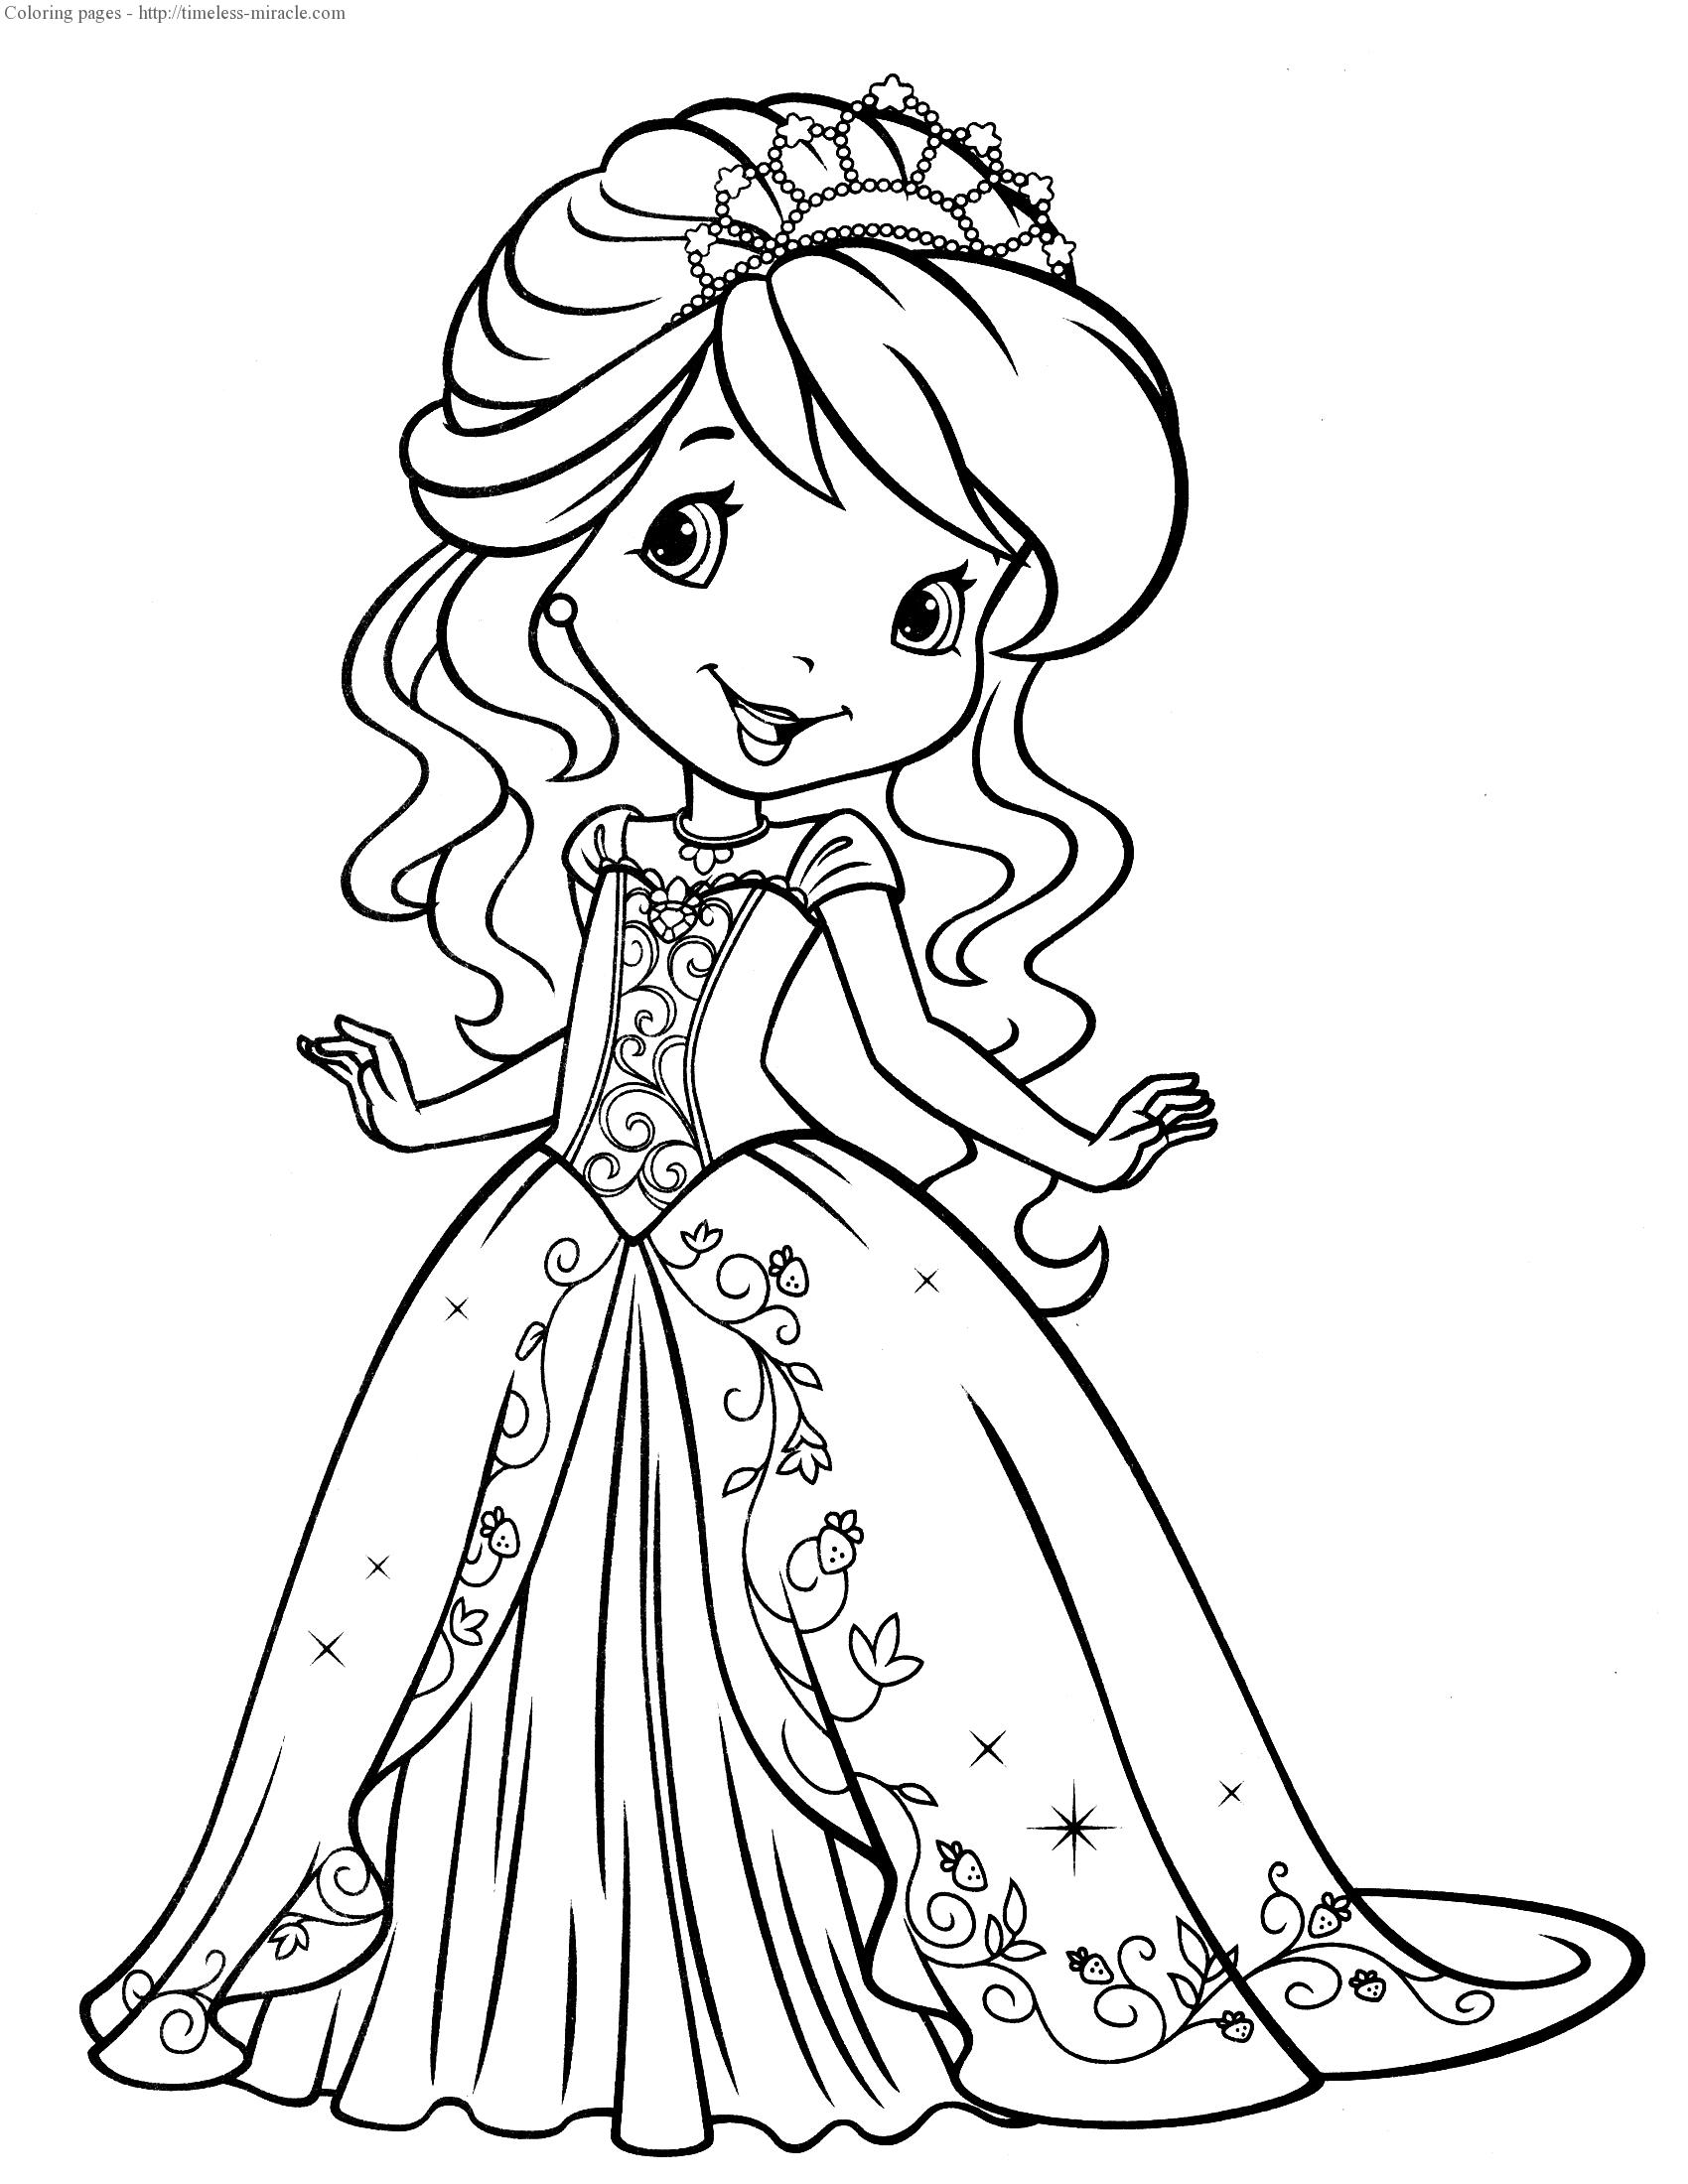 strawberry shortcake princess coloring pages strawberry shortcake princess coloring pages coloring pages princess coloring pages strawberry shortcake